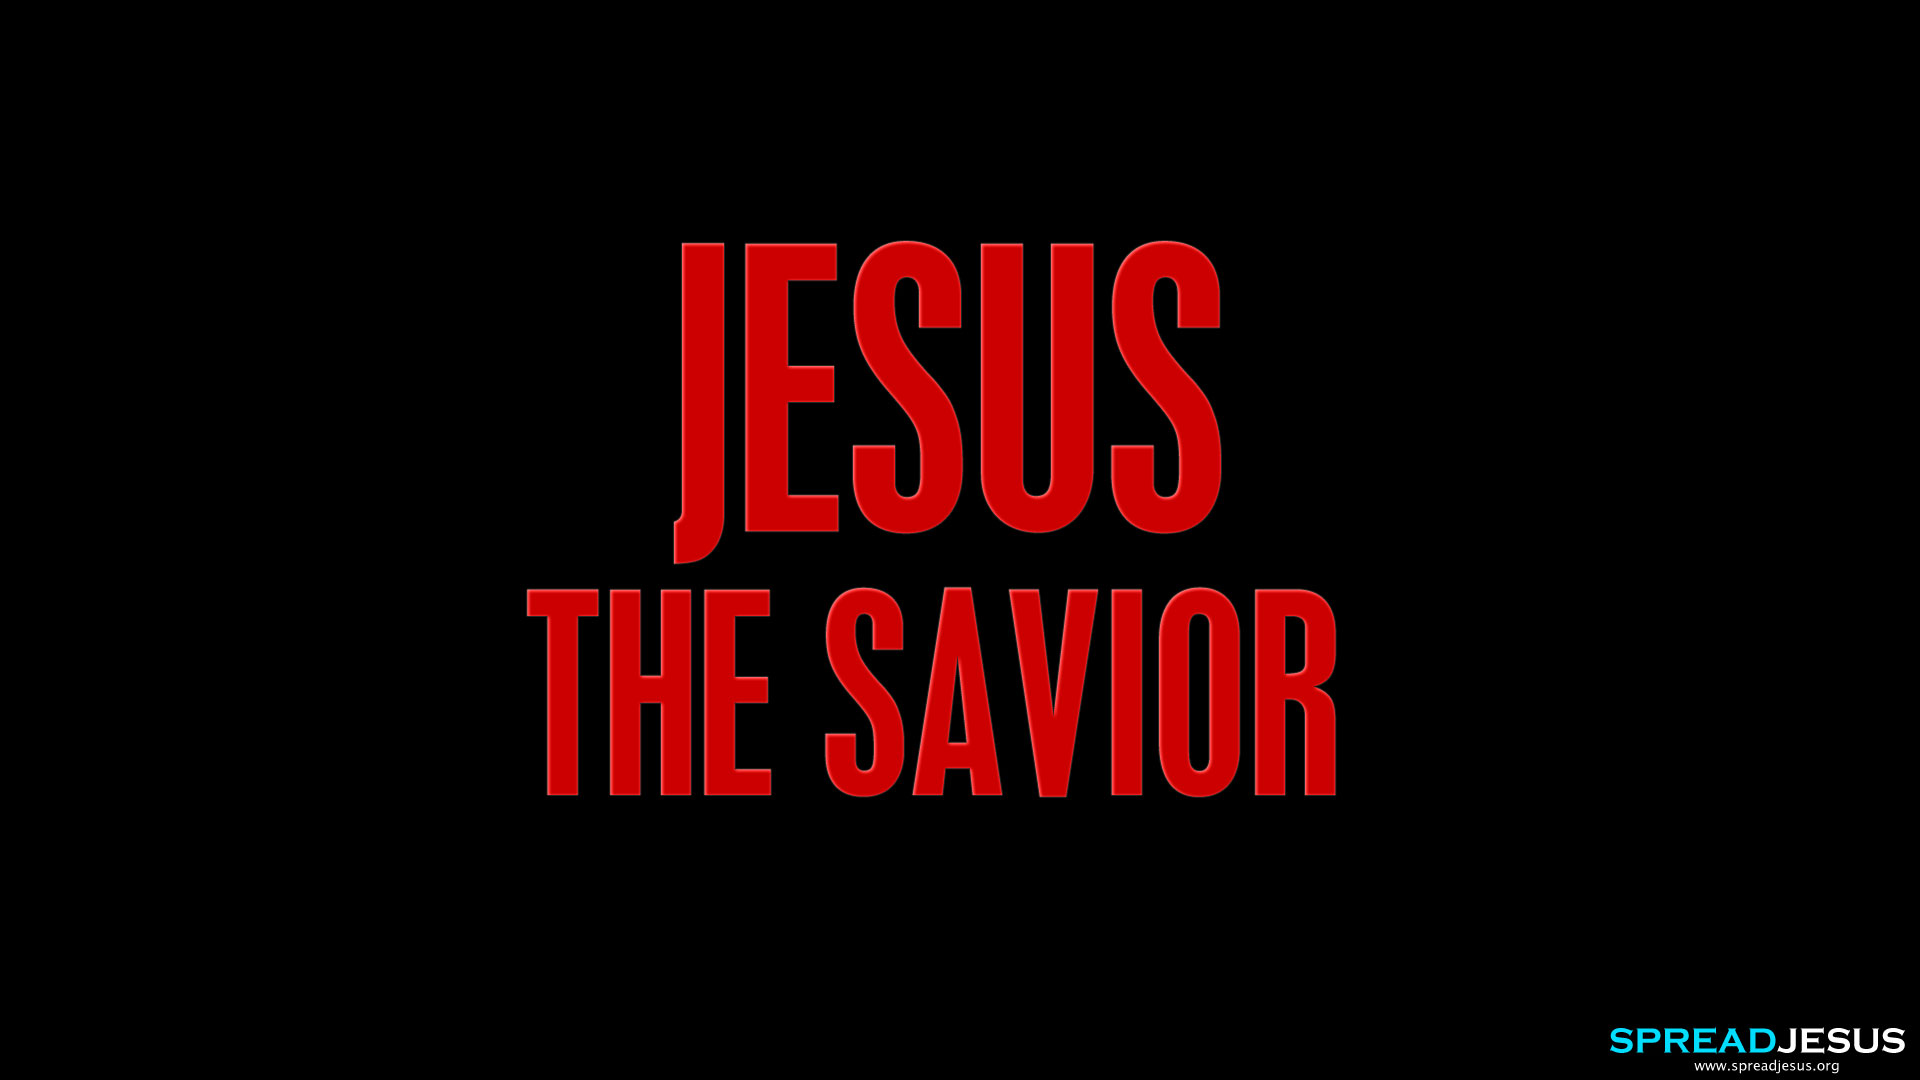 Jesus Christ HD wallpapers free download:Jesus The Savior Jesus Christ HD wallpaper 1 free download:Jesus christ Backgrounds ,christian backgrounds wallpapers HD